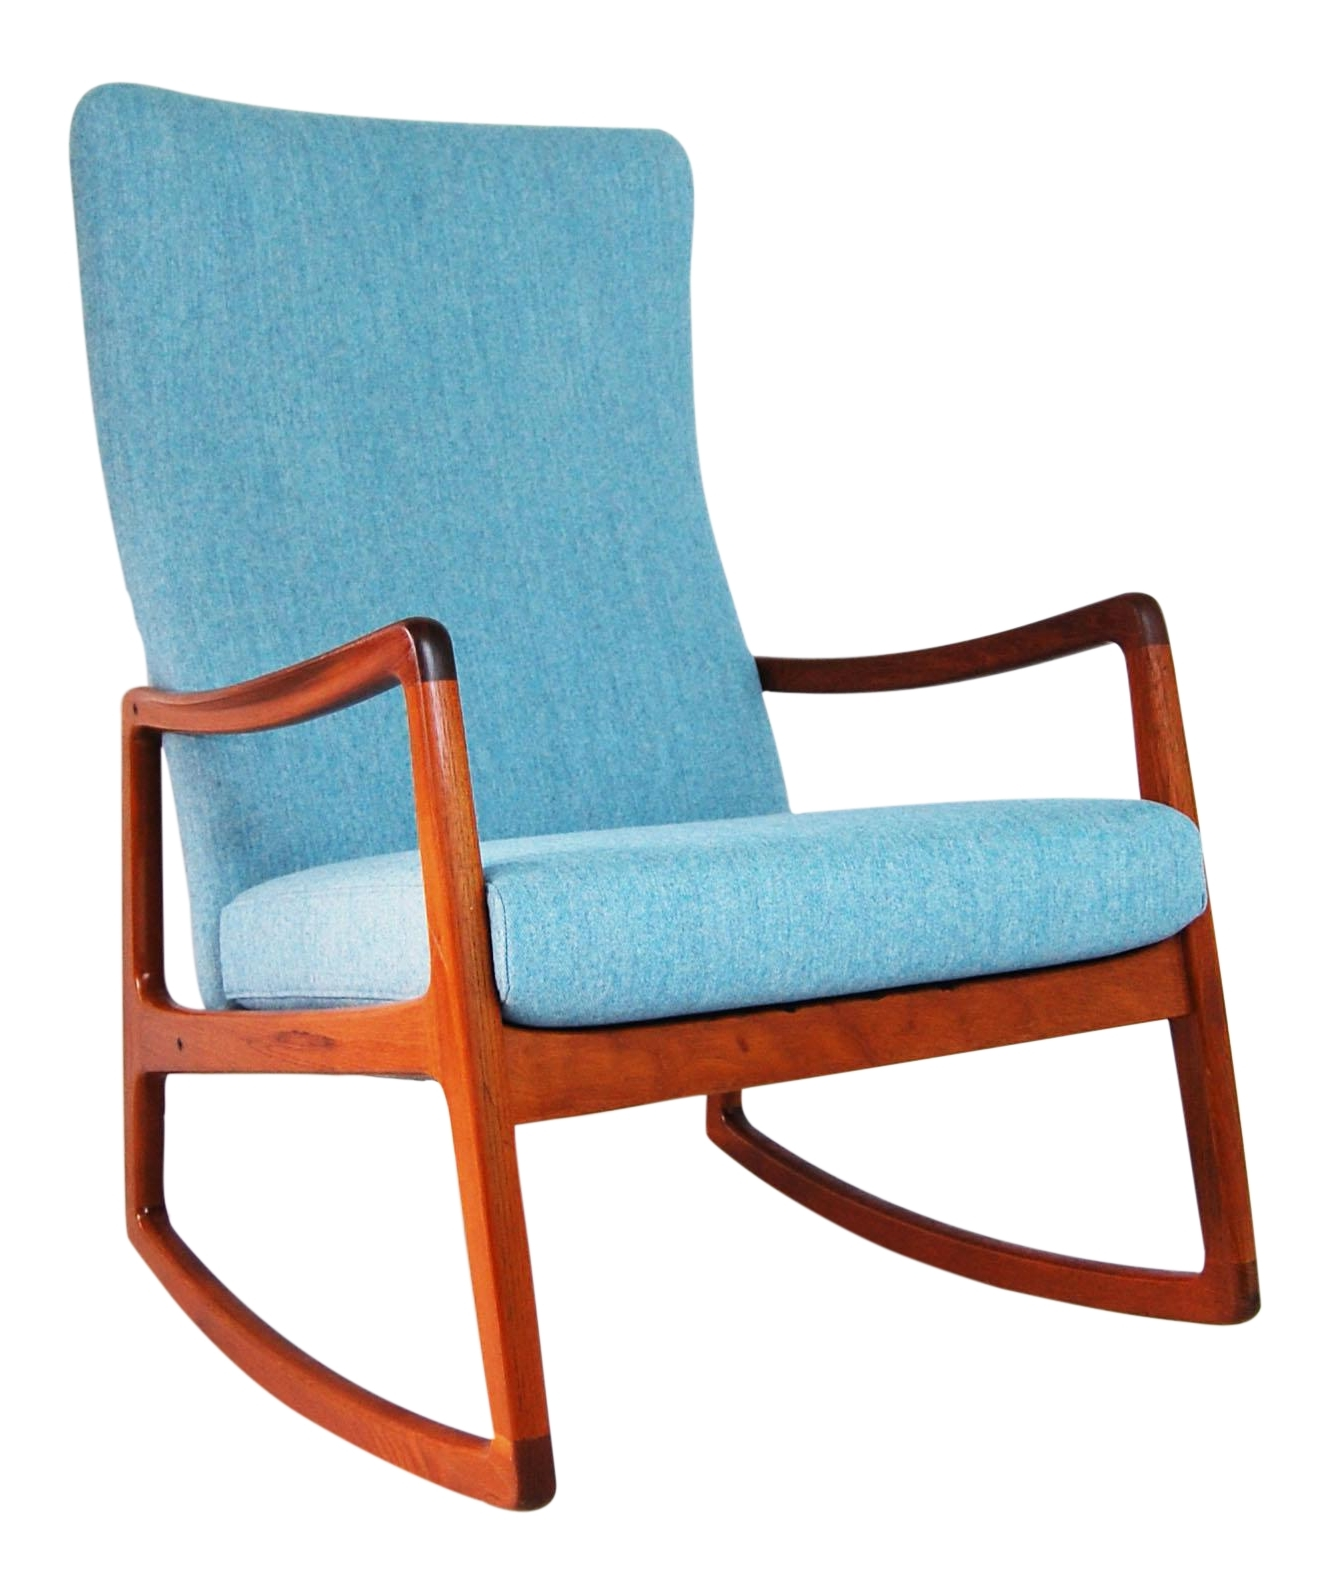 High Back Rocking Chairs Within Most Recently Released High Back Rocking Chair – Modern Chairs Quality Interior (View 15 of 15)